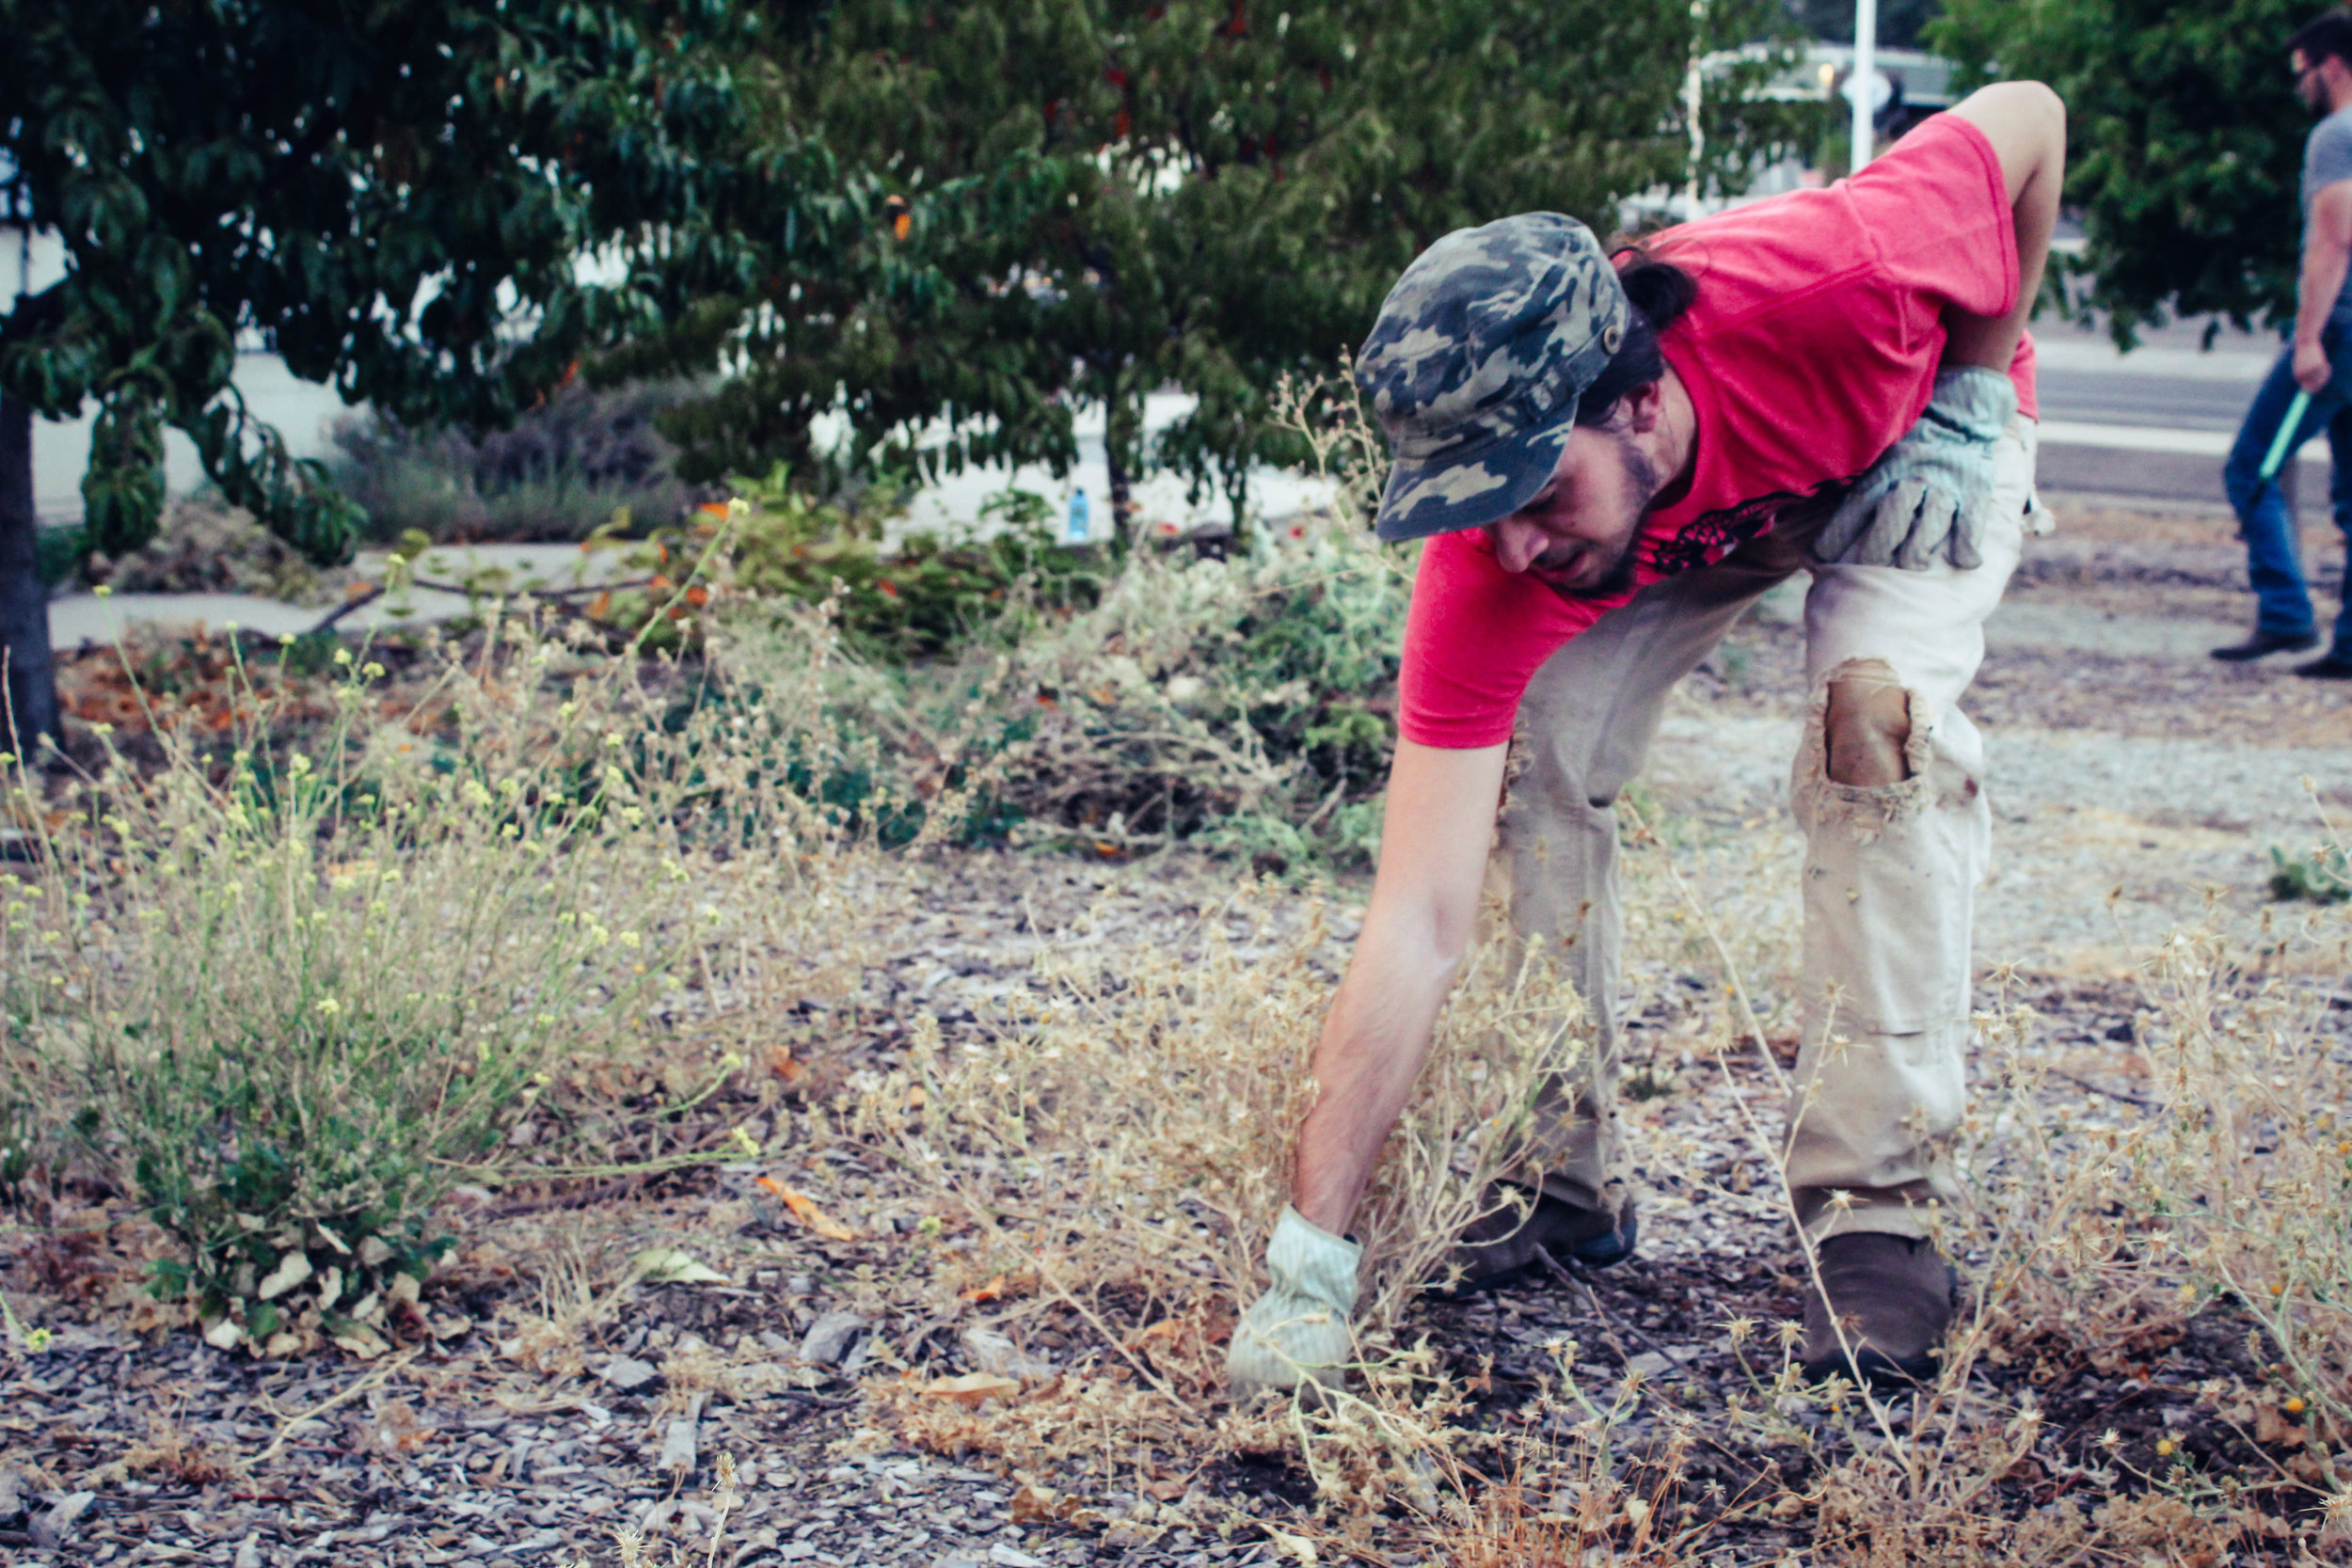 Aaron pulling weeds at the Evening Garden Party at Heritage Community Garden is Shasta Lake.